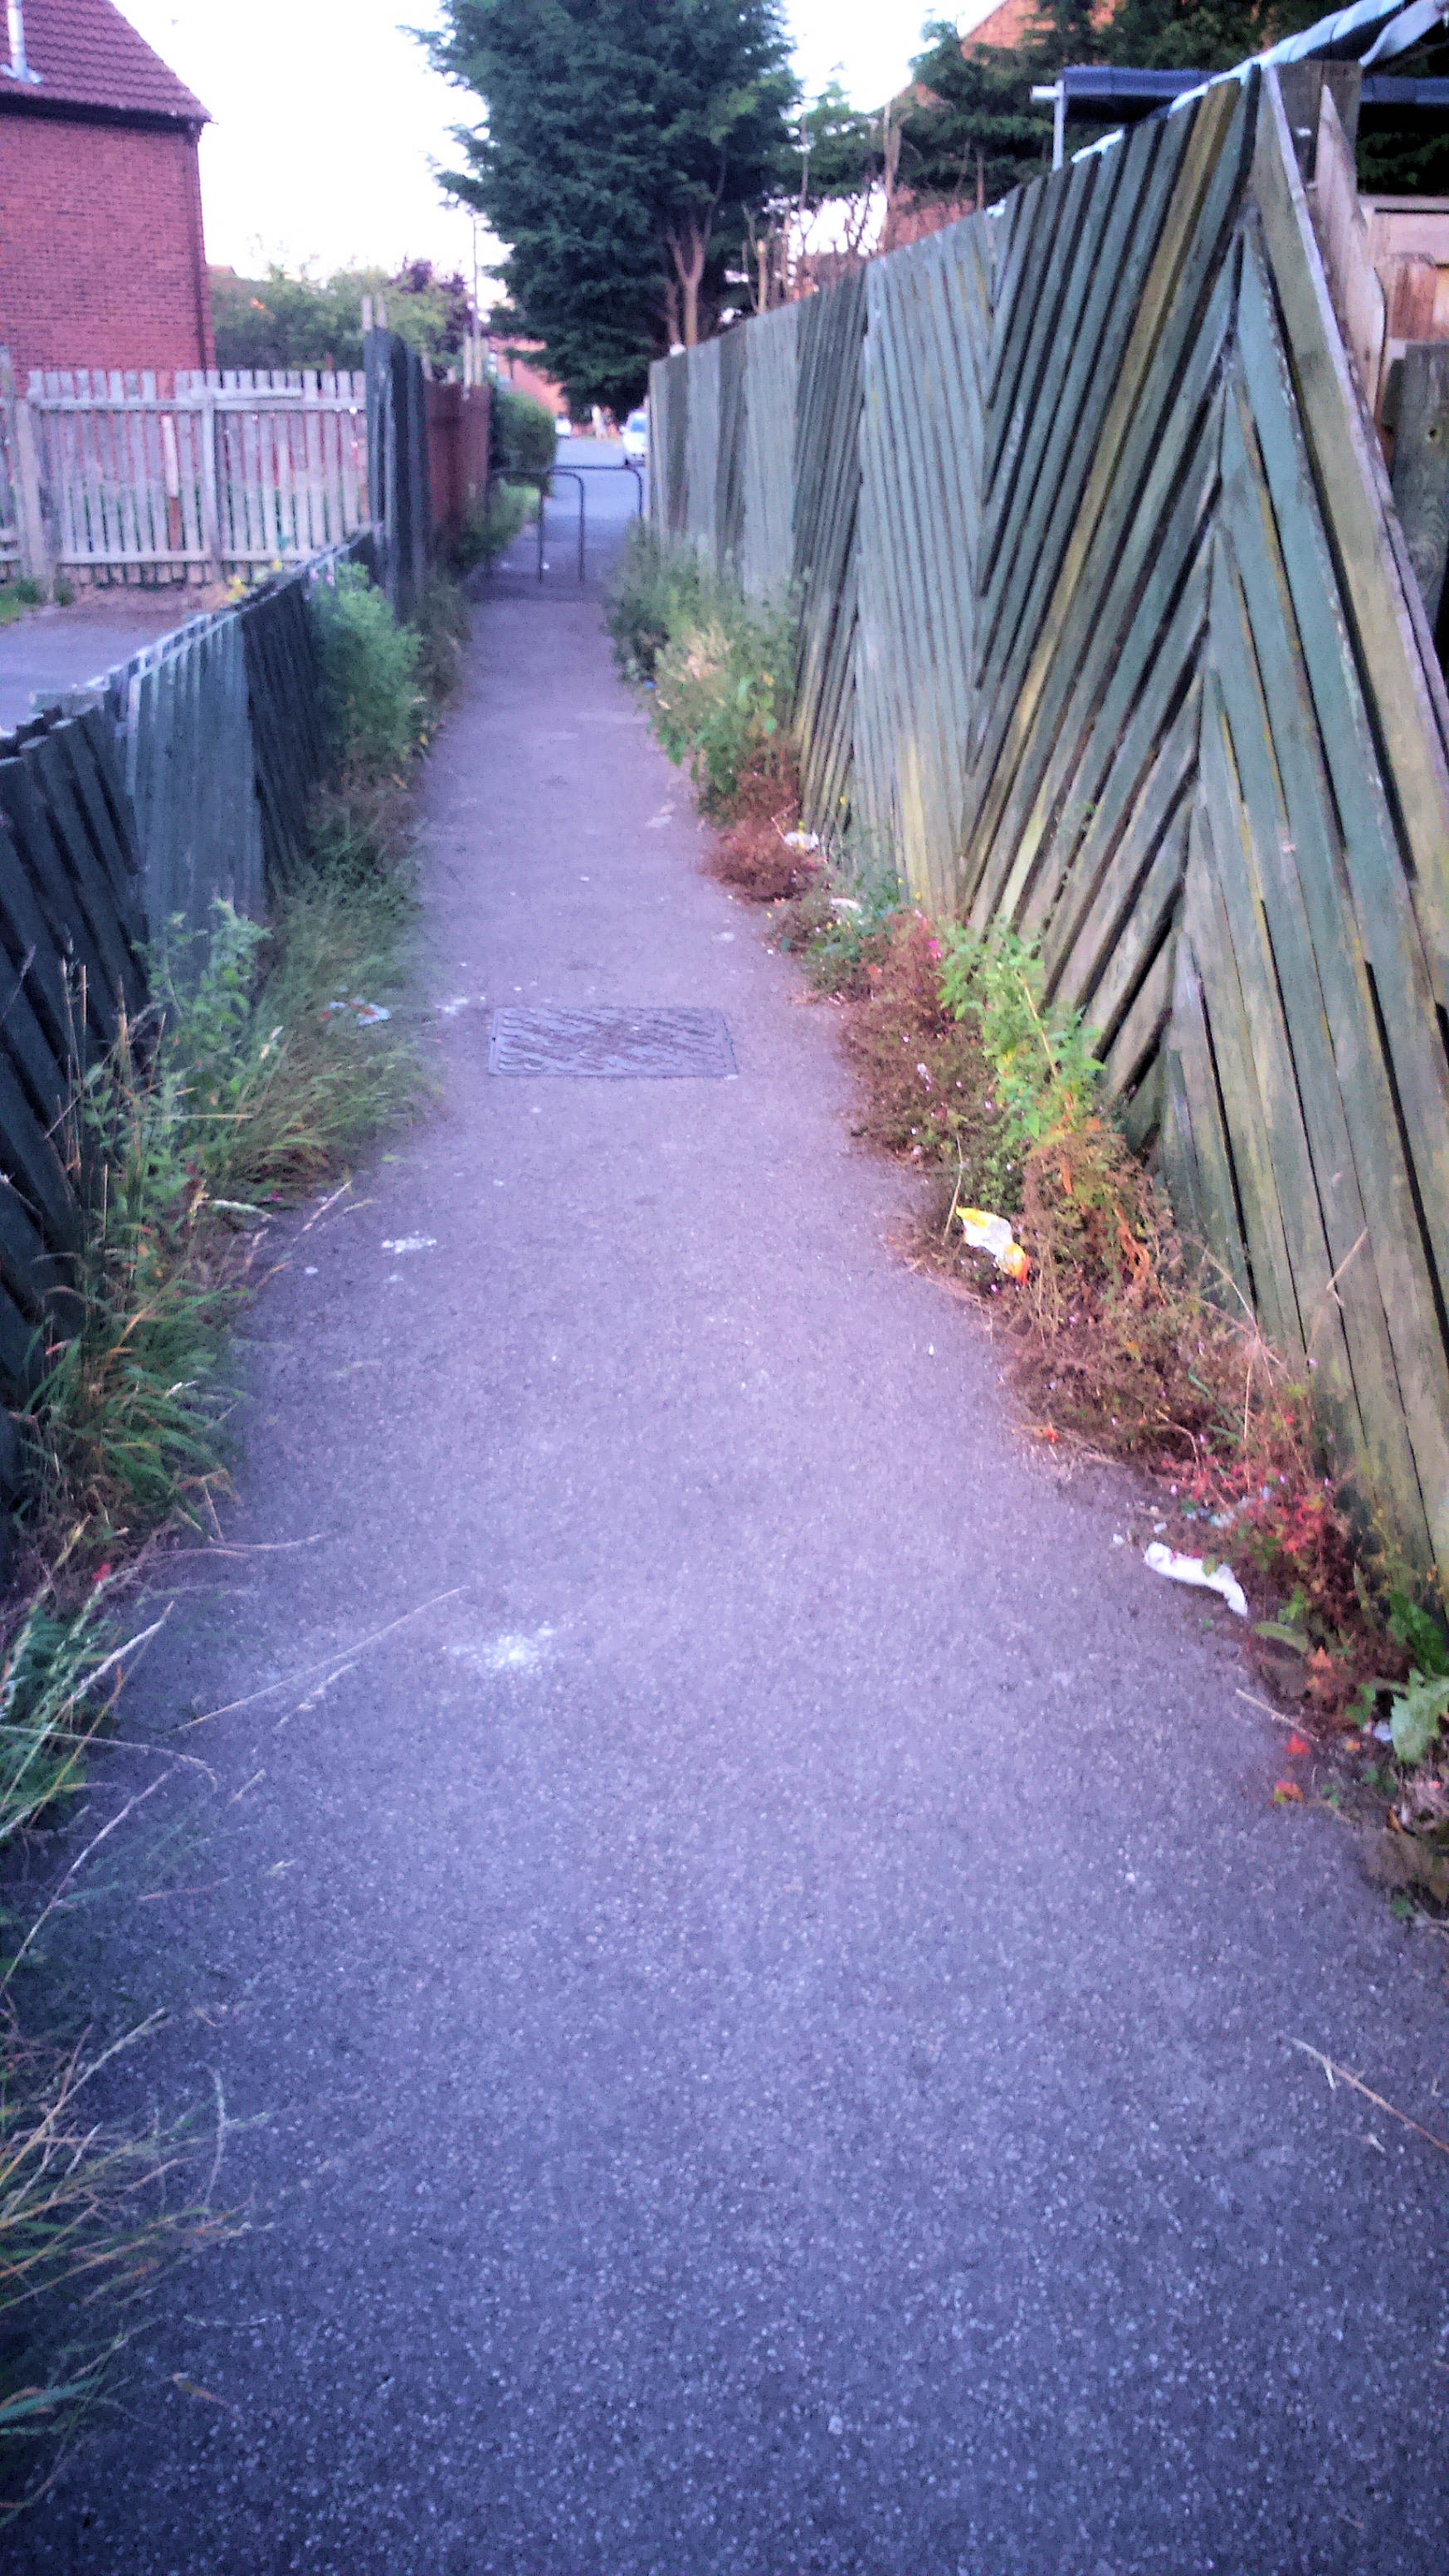 Weeds on Spindal Close snicket